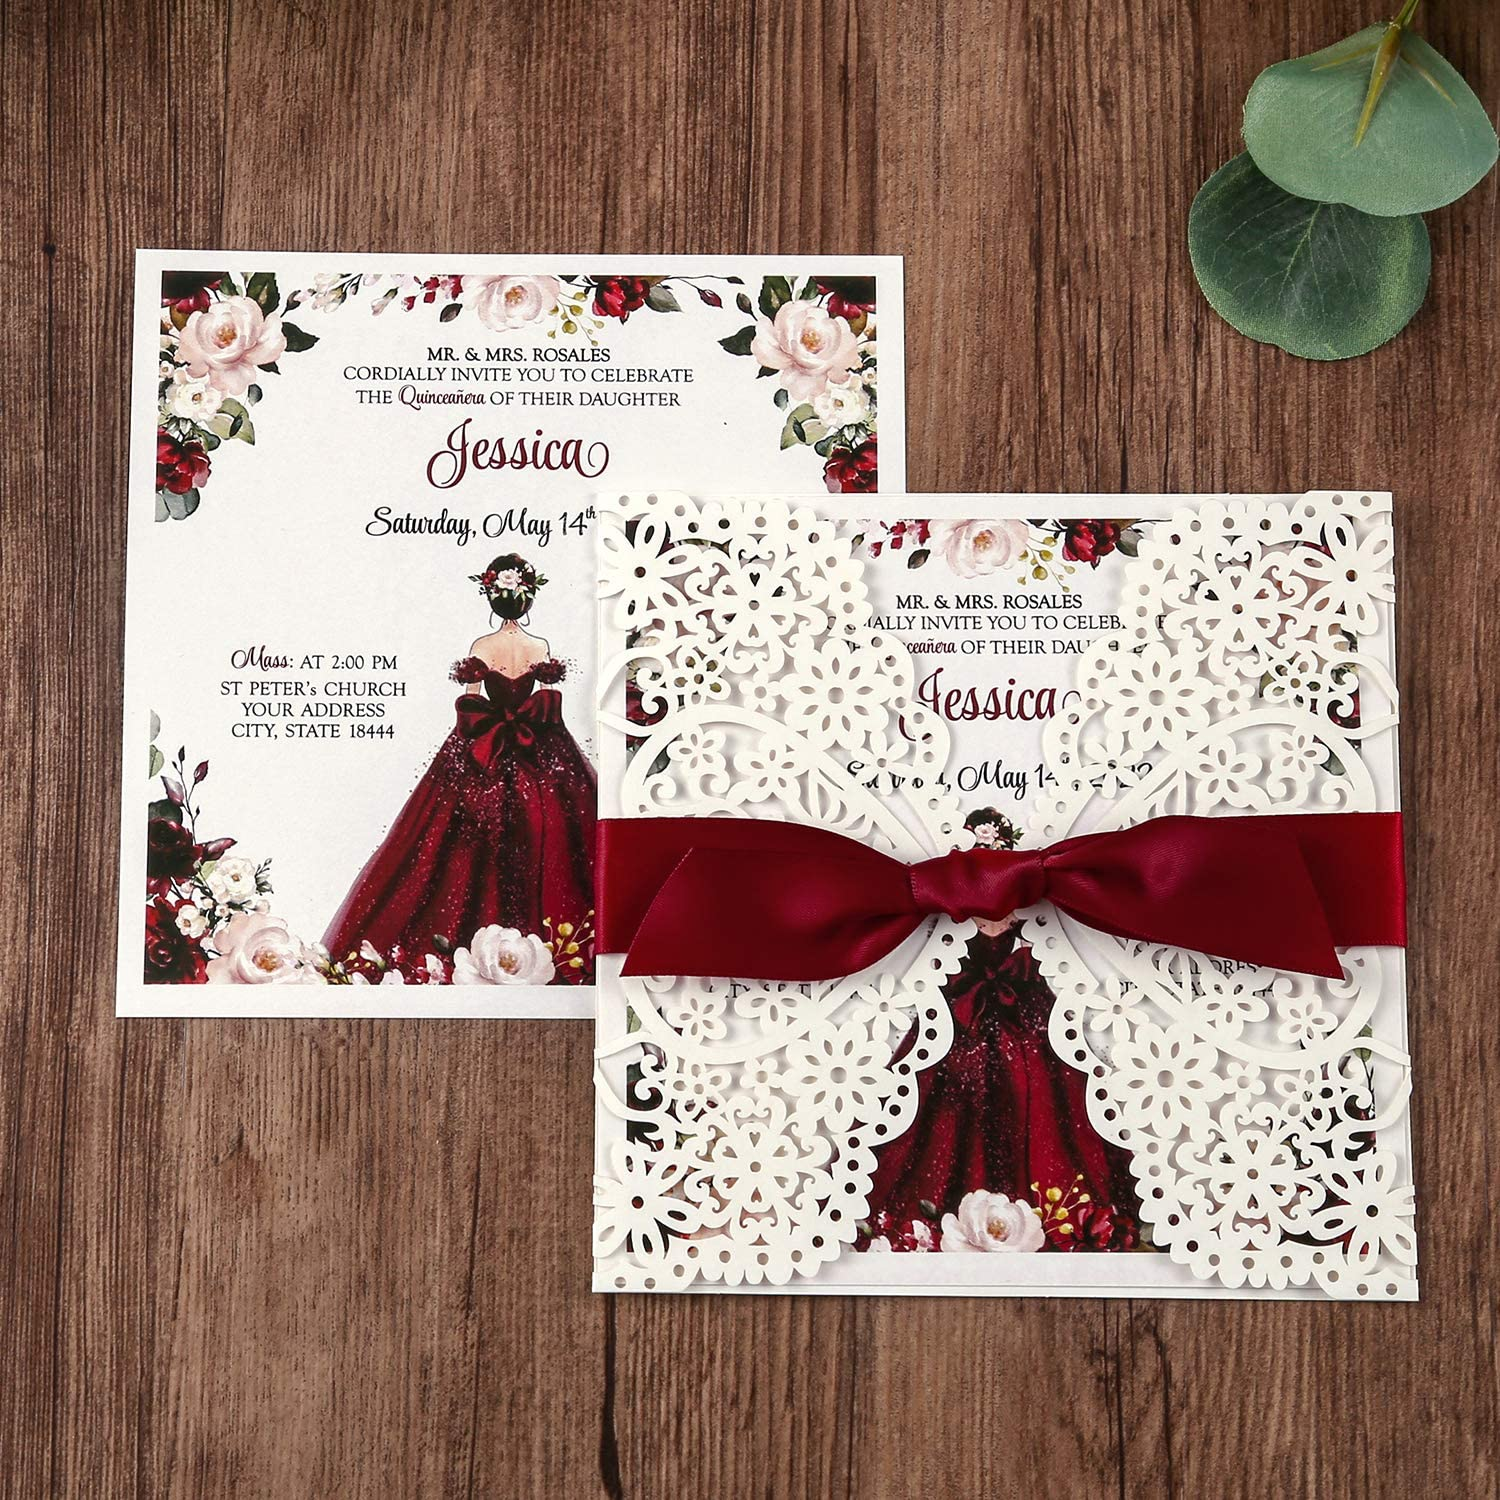 Dream Built 5.9 x 5.9 Inch 50PCS Blank Burgundy Laser Cut Wedding Invitations With Burgundy Ribbon and Envelopes Kit Hollow Flower Pocket for Bridal Shower Quincenera Birthday Invite